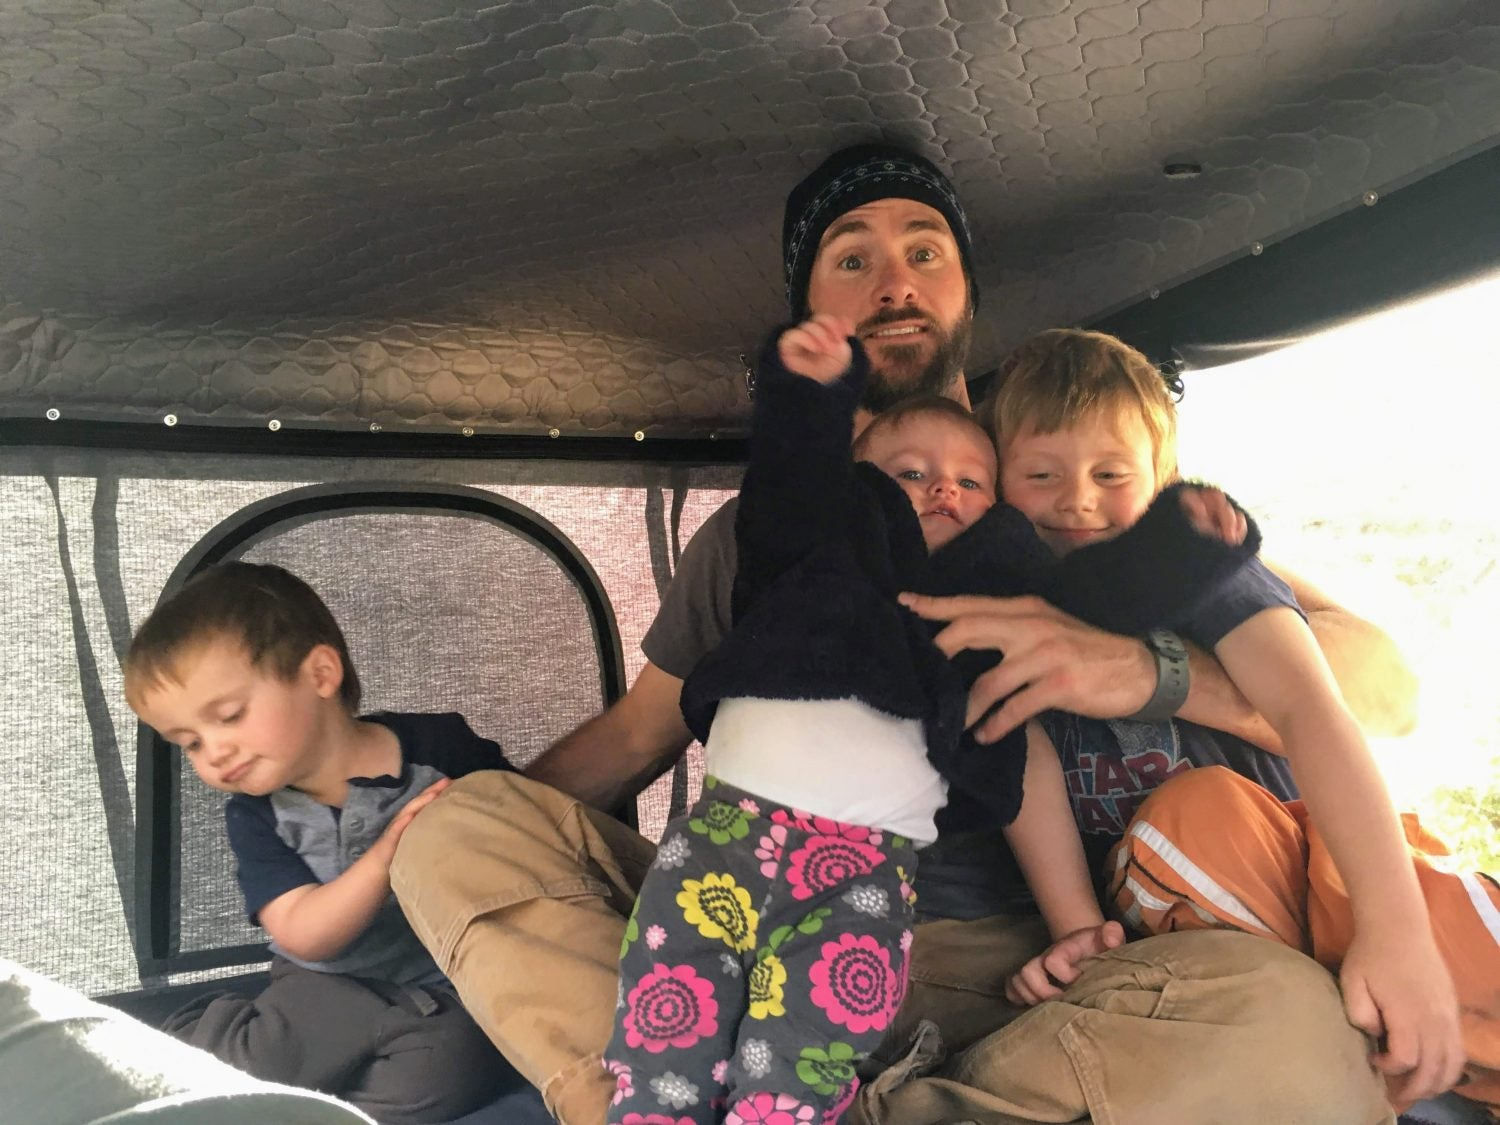 Fitting a dad and three kids in the Roofnest hard shell rooftop tent